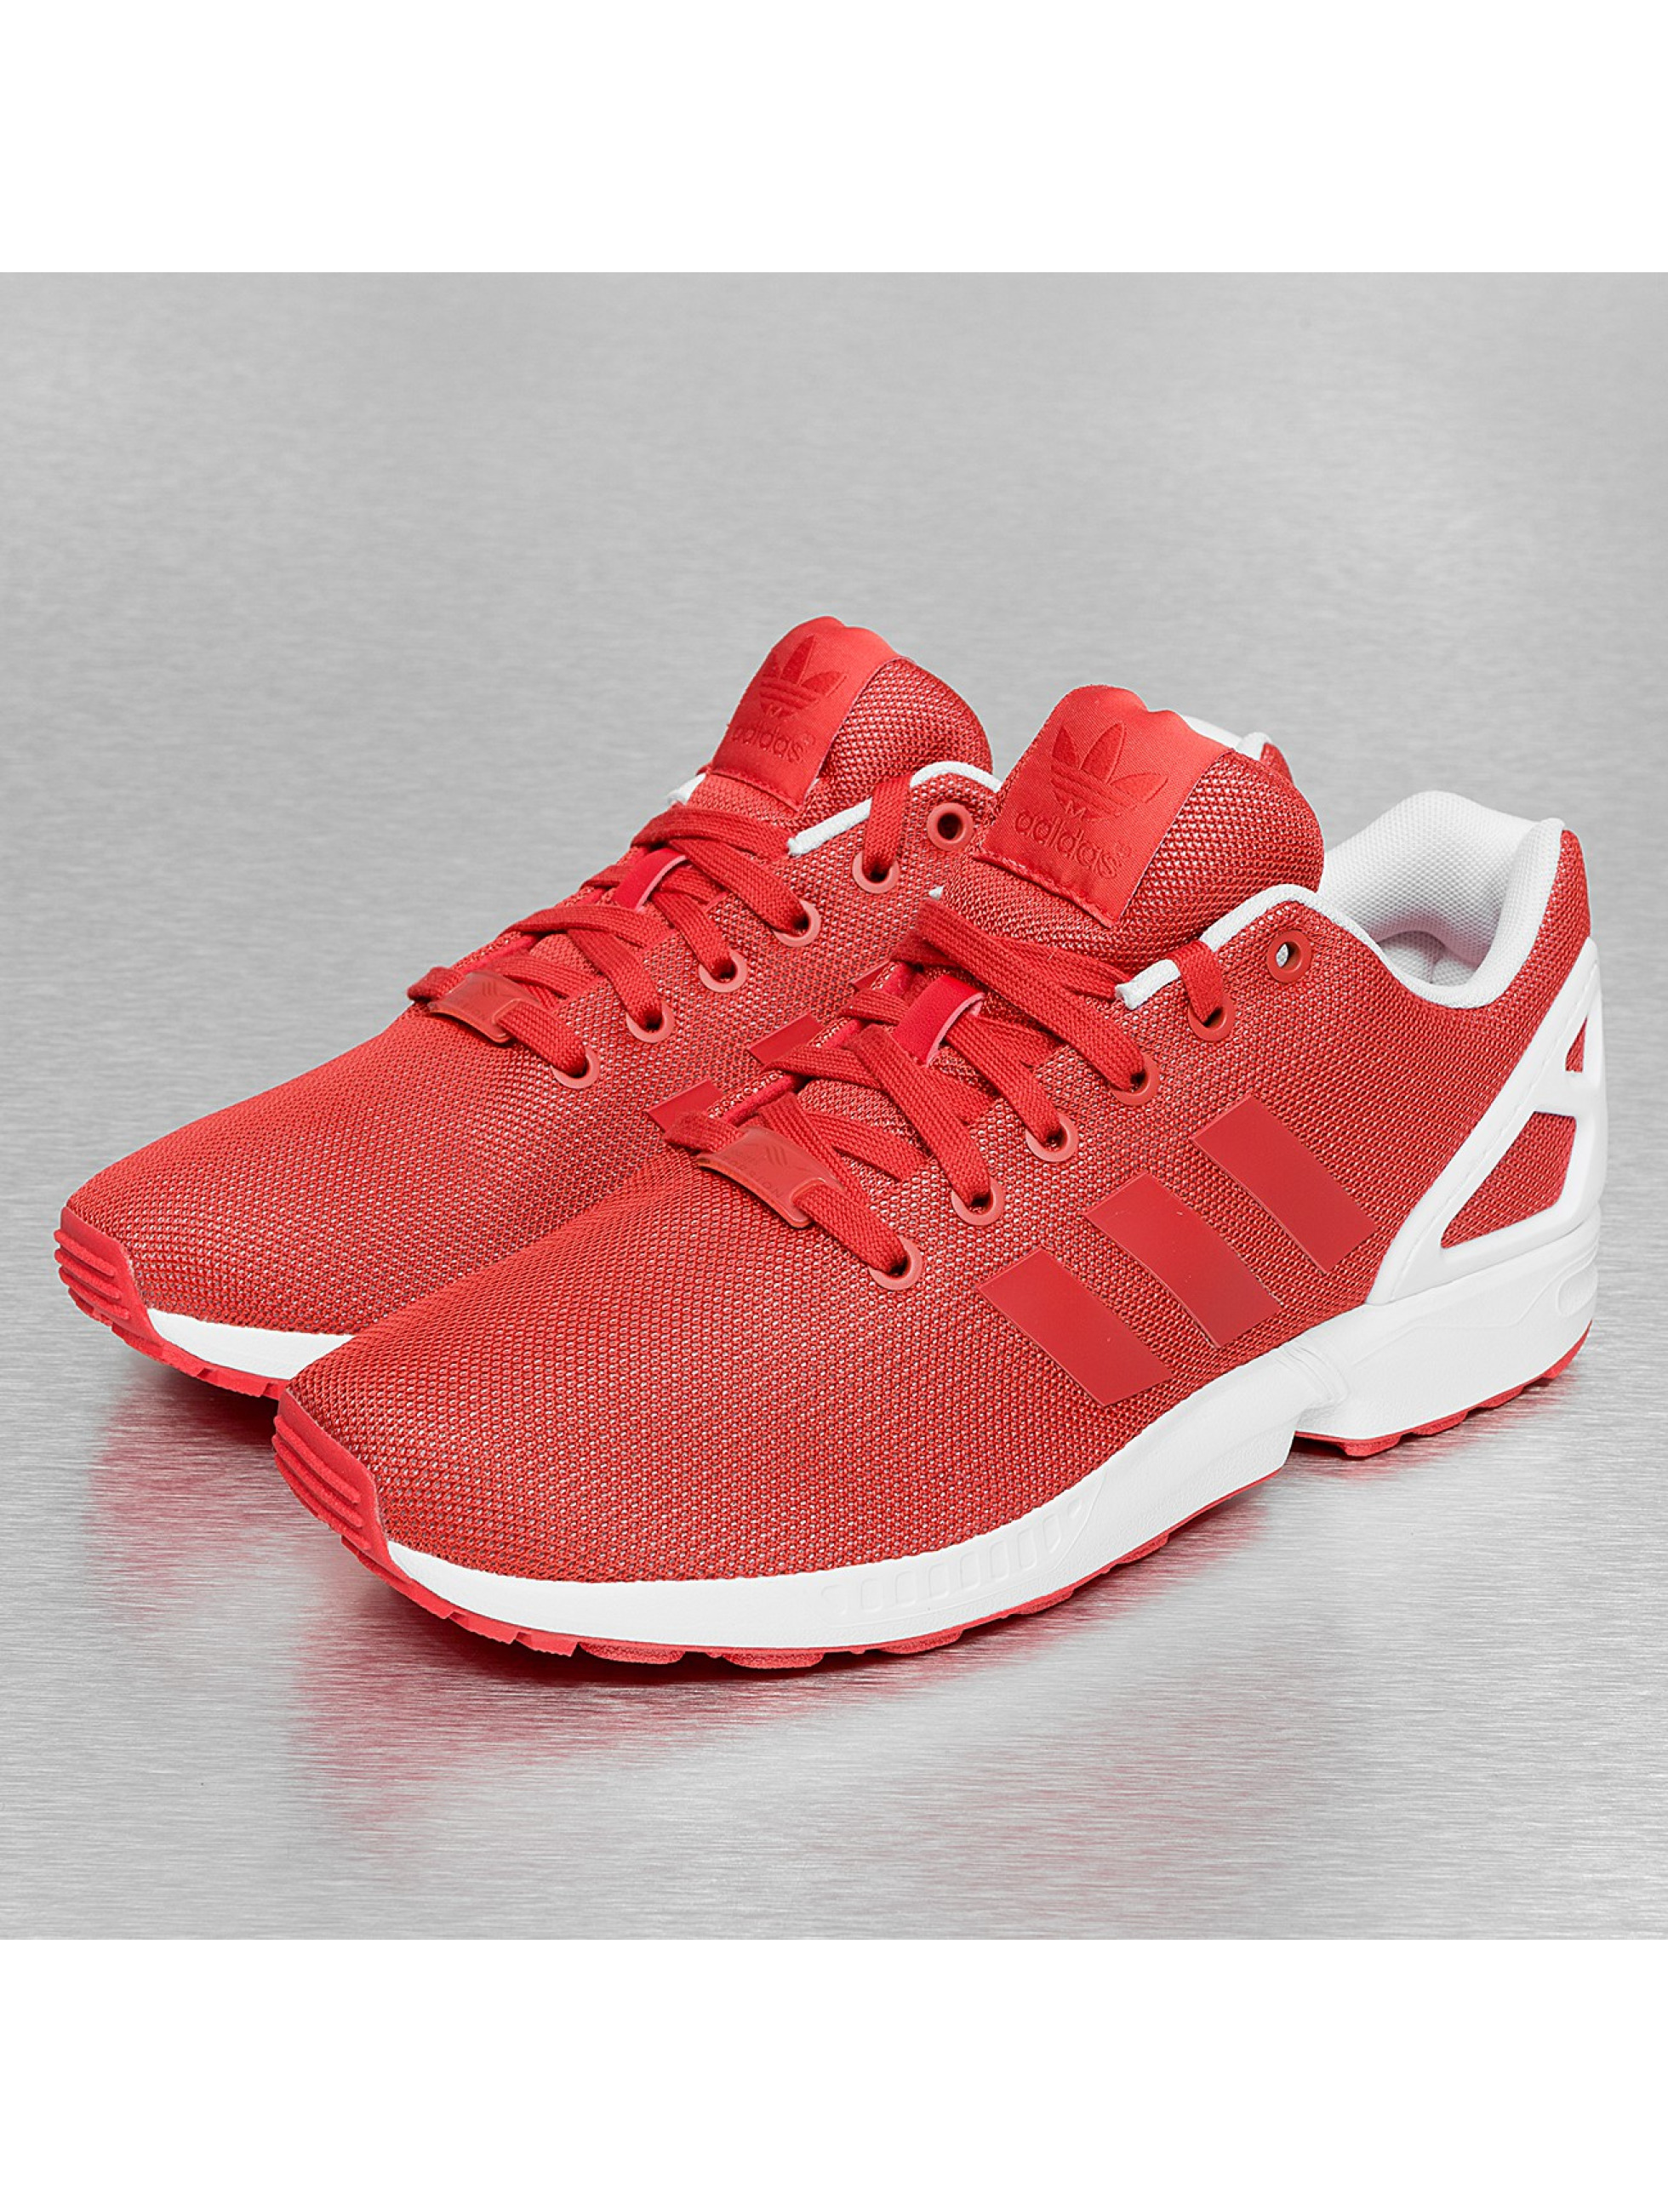 Adidas Zx Flux 2.0 Rot